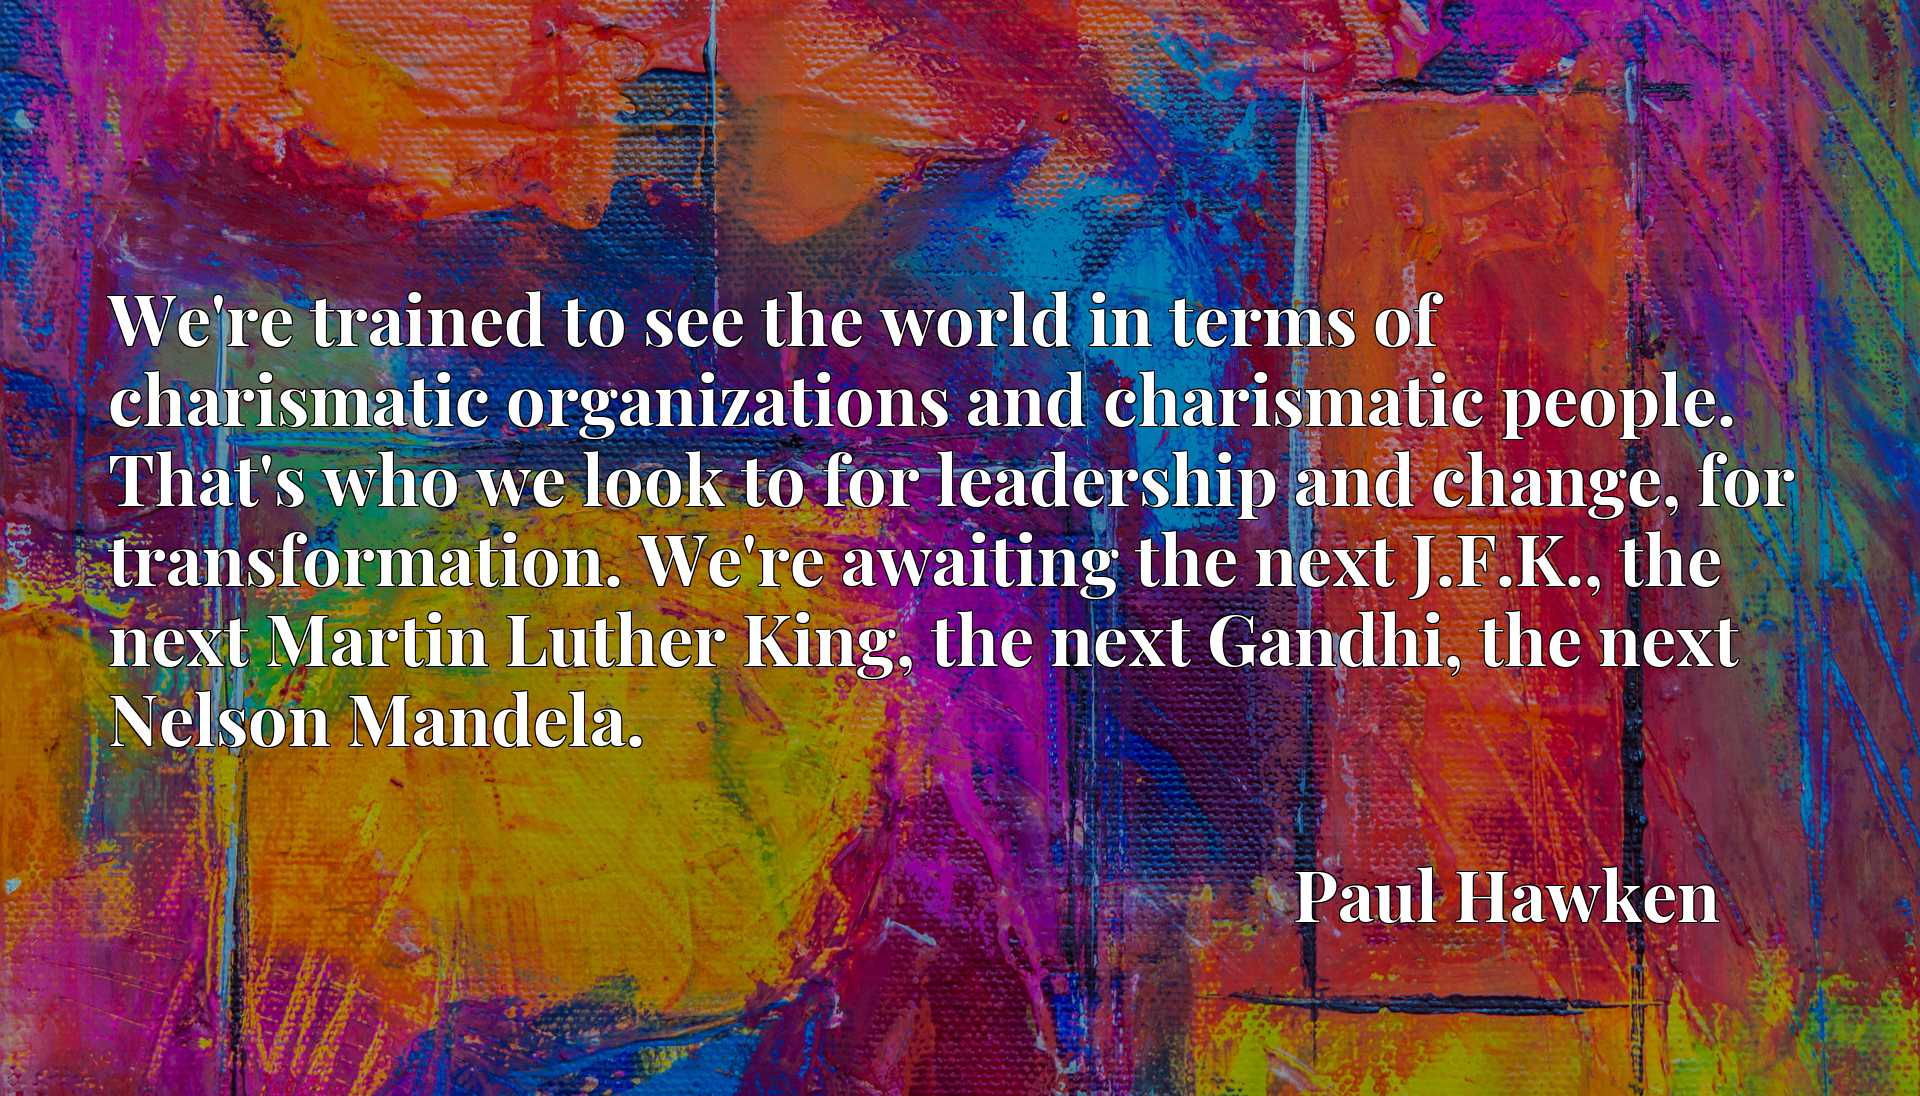 We're trained to see the world in terms of charismatic organizations and charismatic people. That's who we look to for leadership and change, for transformation. We're awaiting the next J.F.K., the next Martin Luther King, the next Gandhi, the next Nelson Mandela.